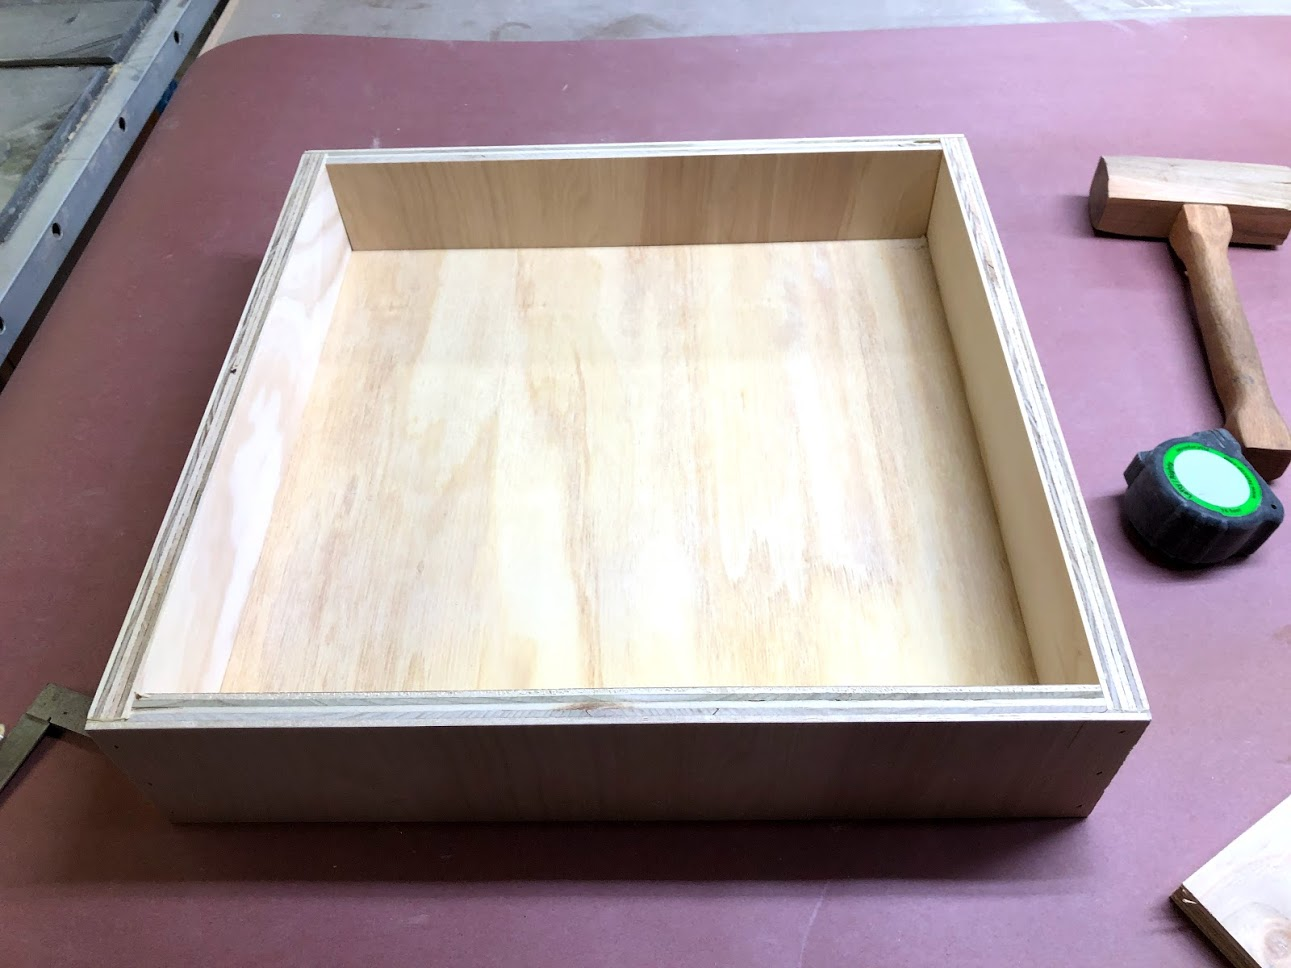 Here is one of the assembled drawers